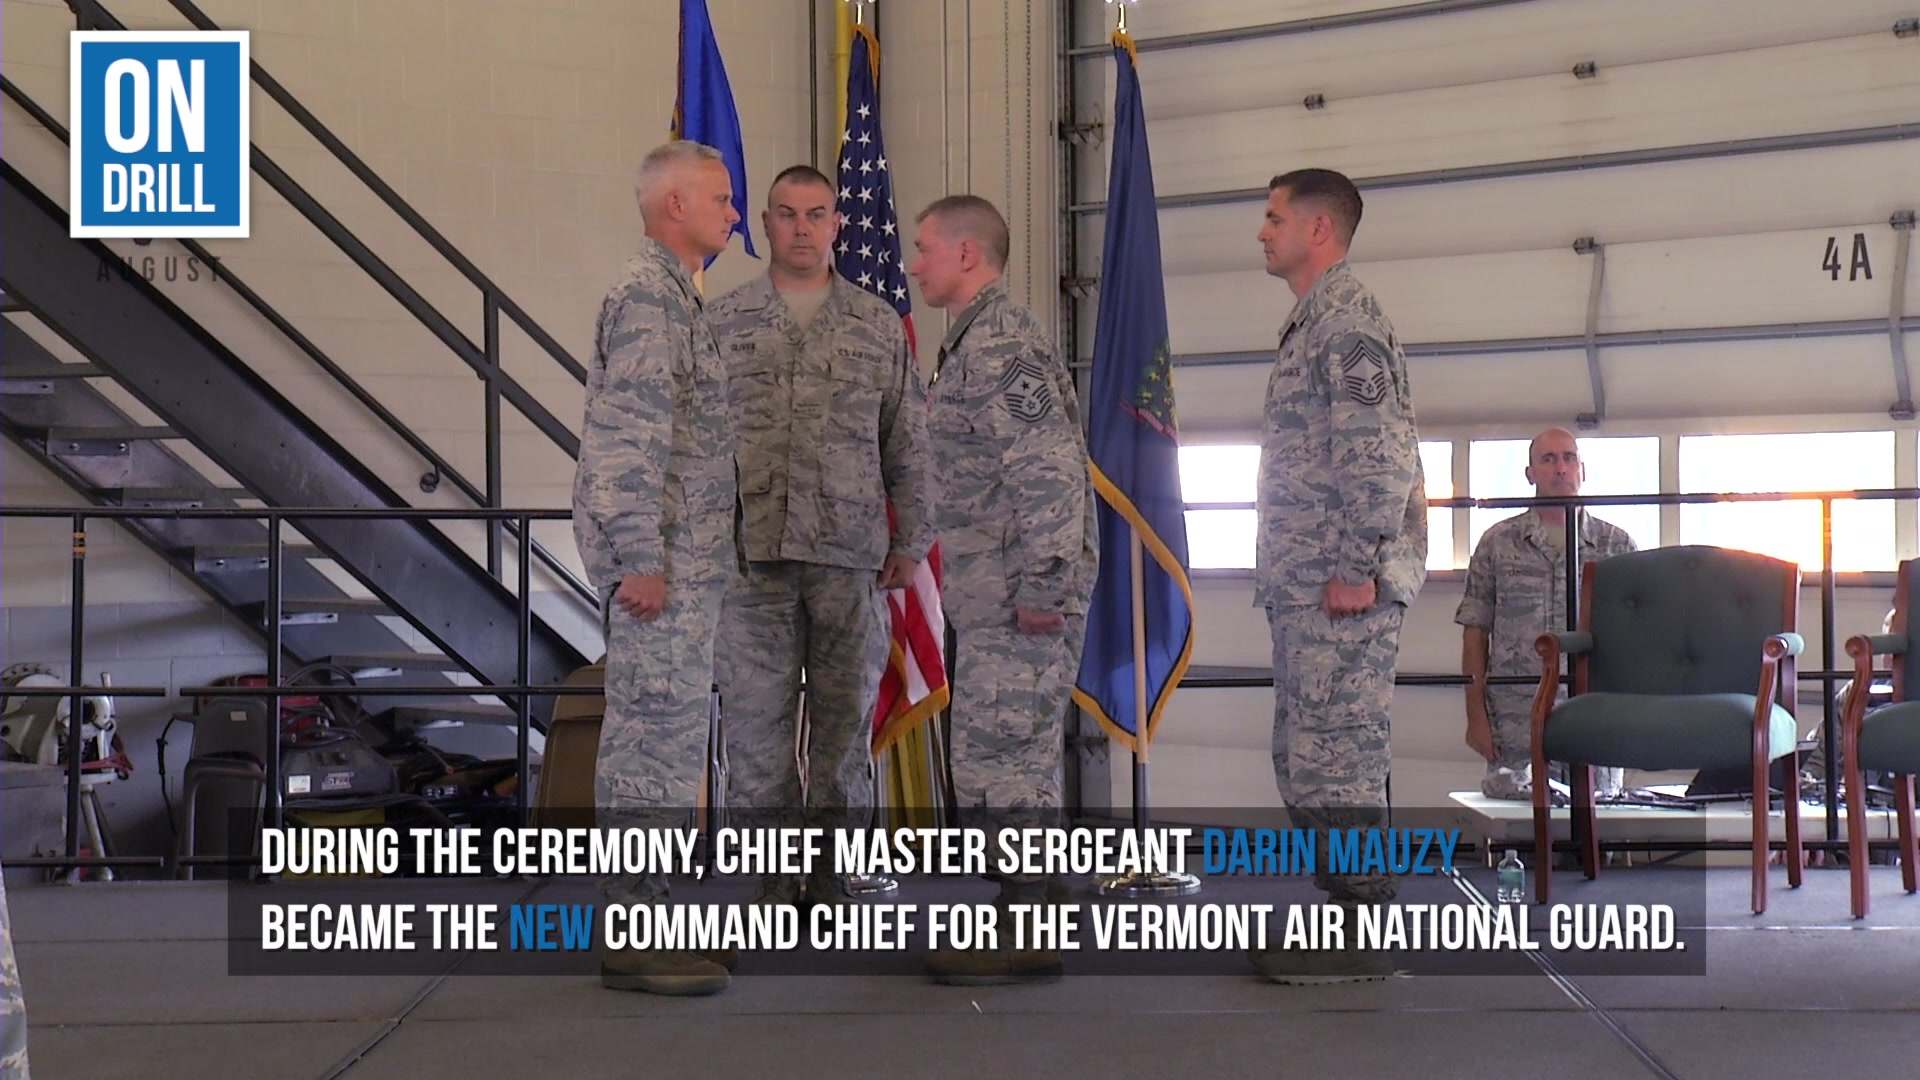 On August 4th of 2018, members of the Vermont Air National Guard honored Command Chief Master Sergeant Brian Marchessault during a Change of Command ceremony.  During the ceremony, CMSgt Darin Mauzy became the new Command Chief for the Vermont Air National Guard.